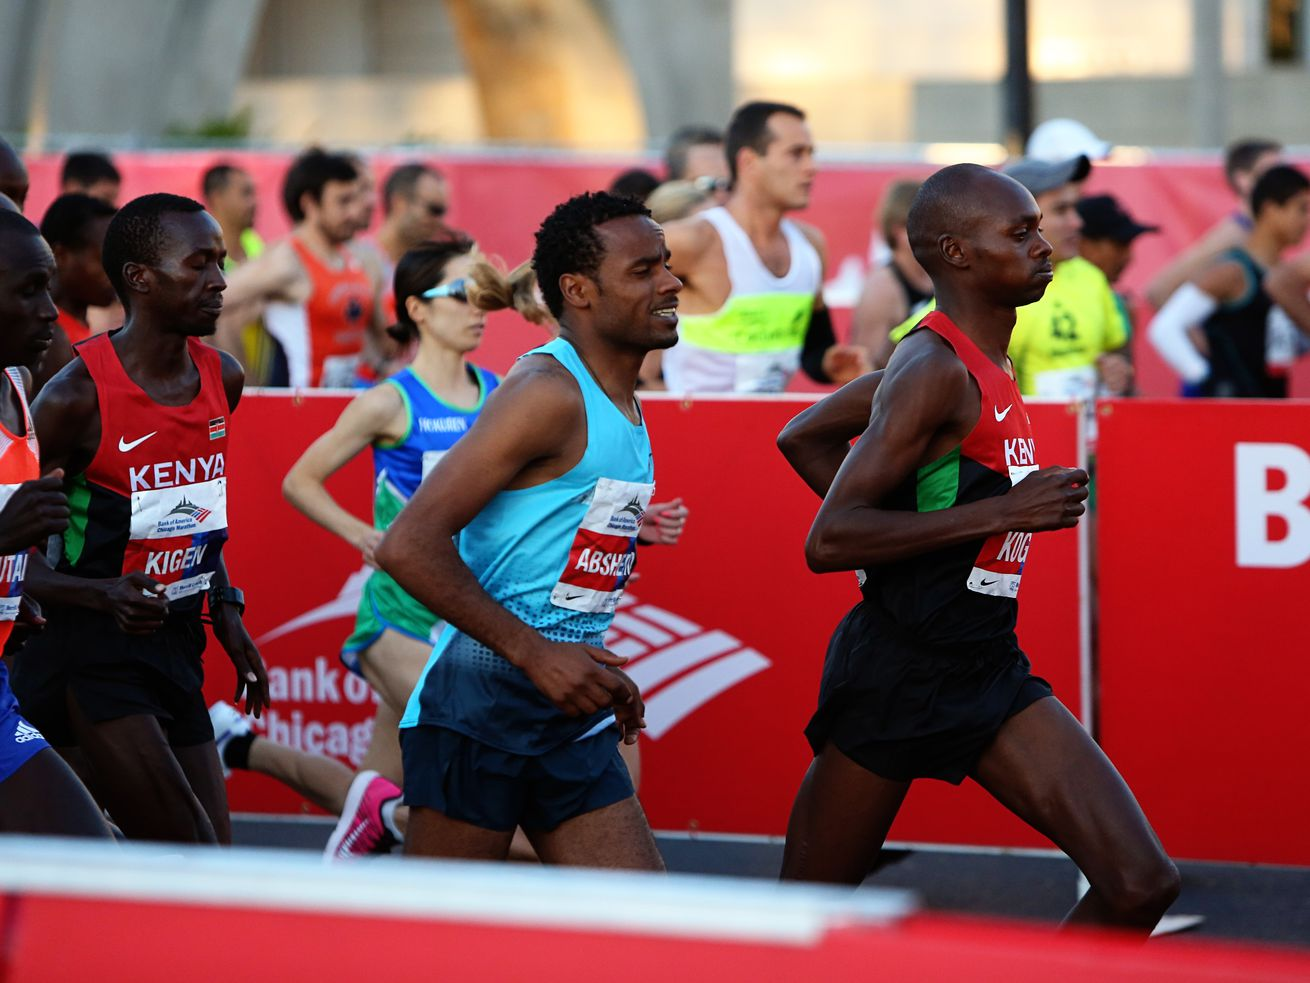 Runners in the Elite division start the 26.2 mile Bank of America Chicago Marathon in October 2013.